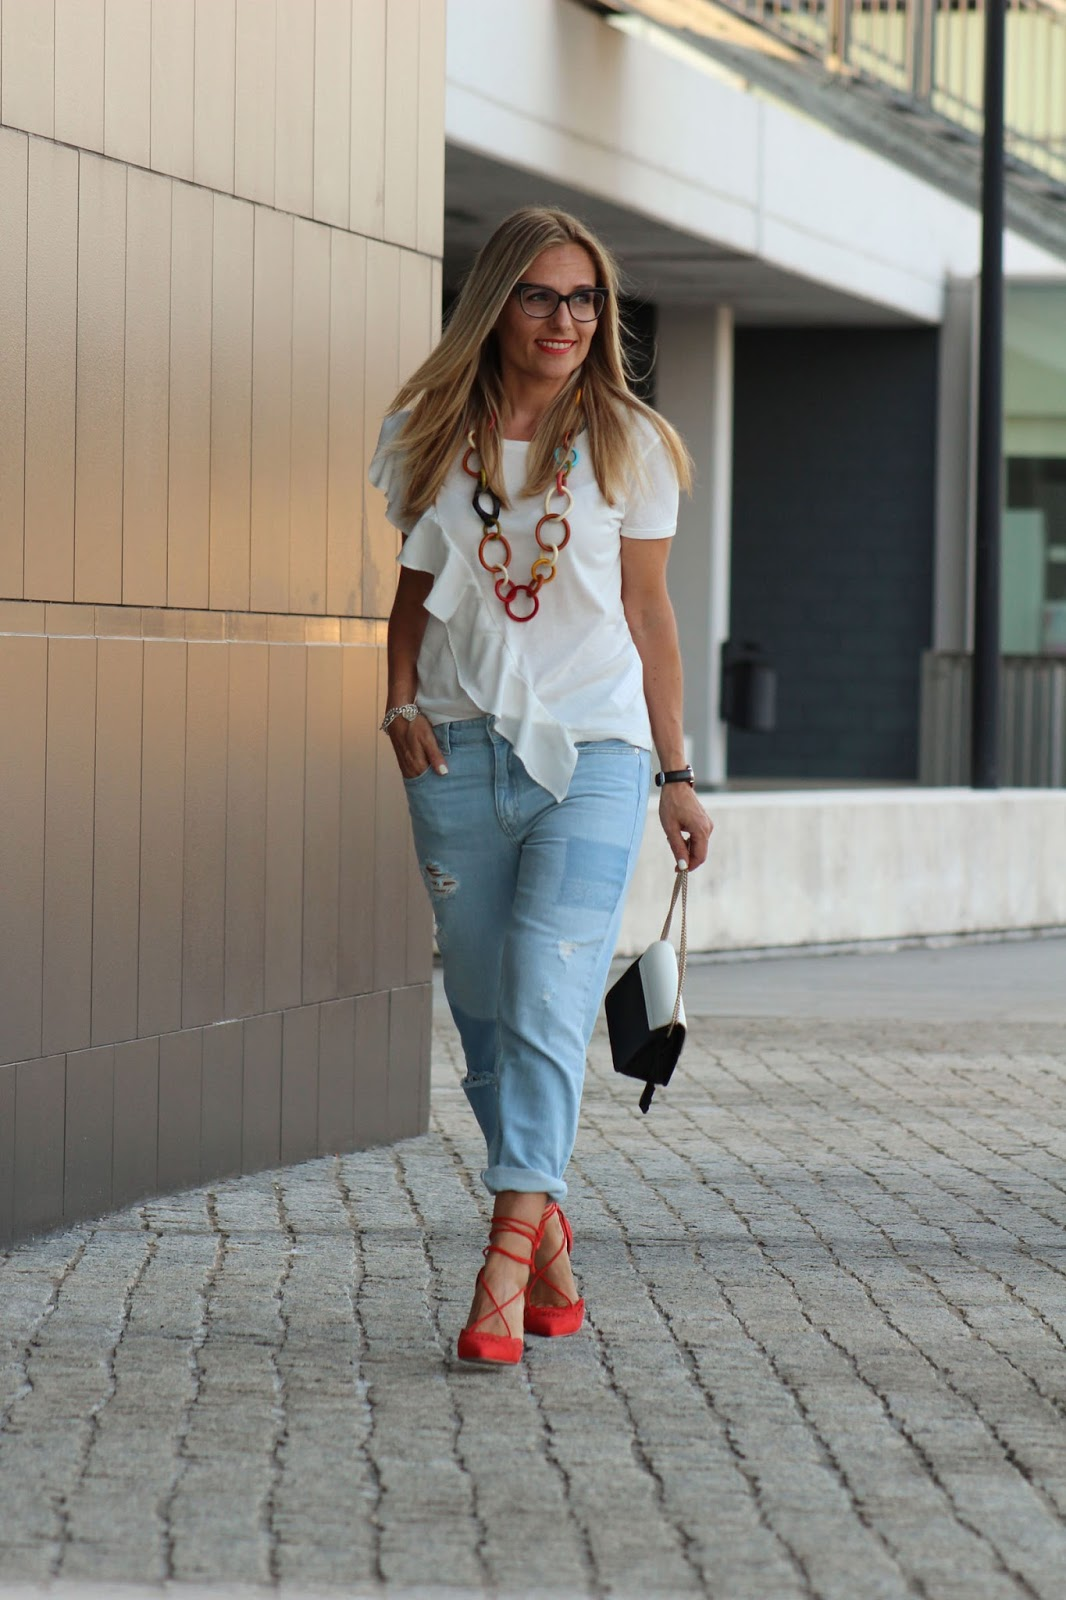 Eniwhere Fashion - Saldi's outfit